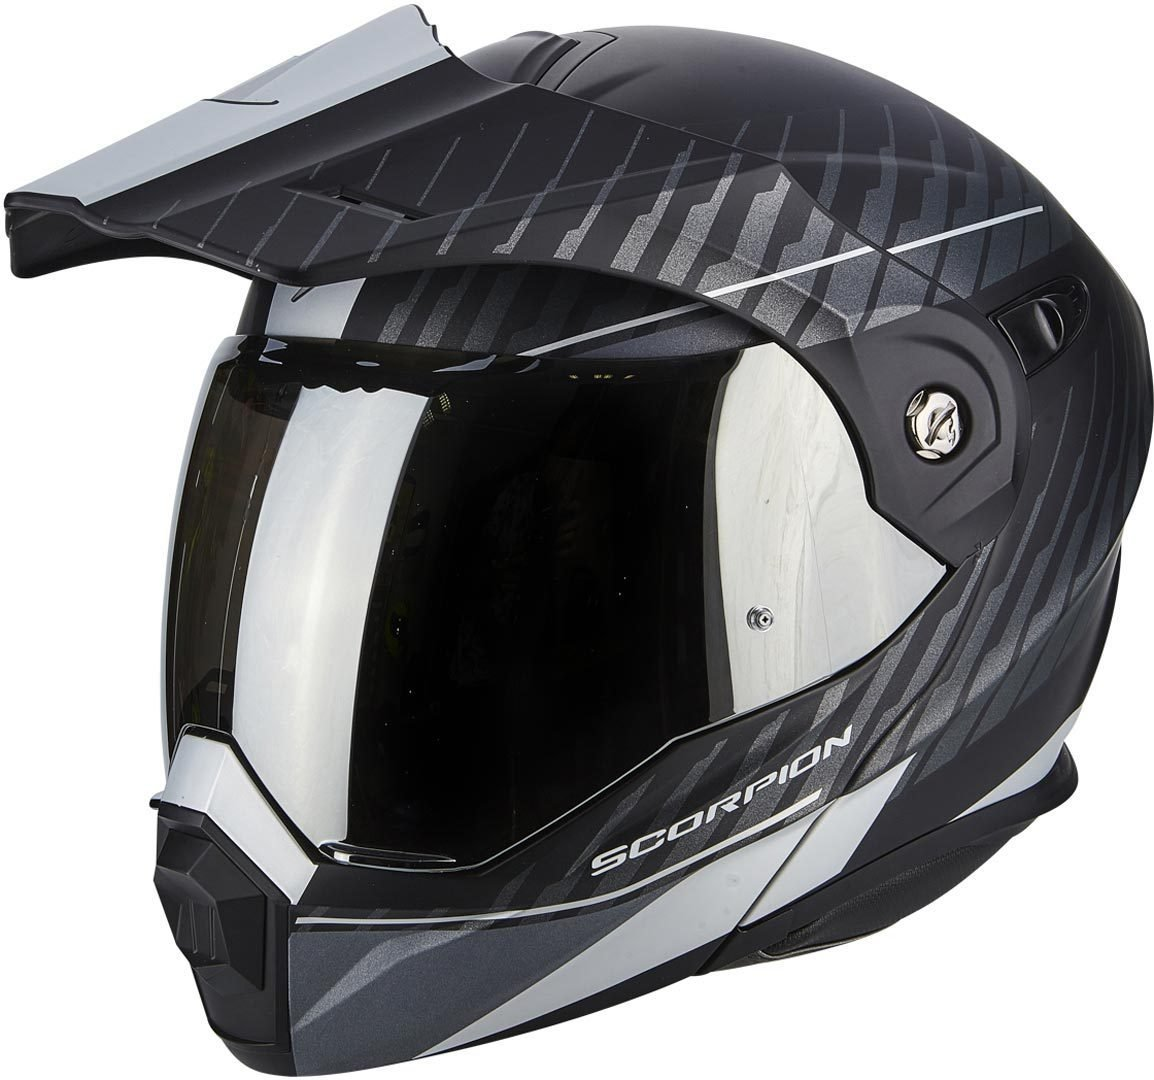 62//63 Schwarz Matt//Orange Scorpion ADX-1 Dual Enduro Klapphelm XXL